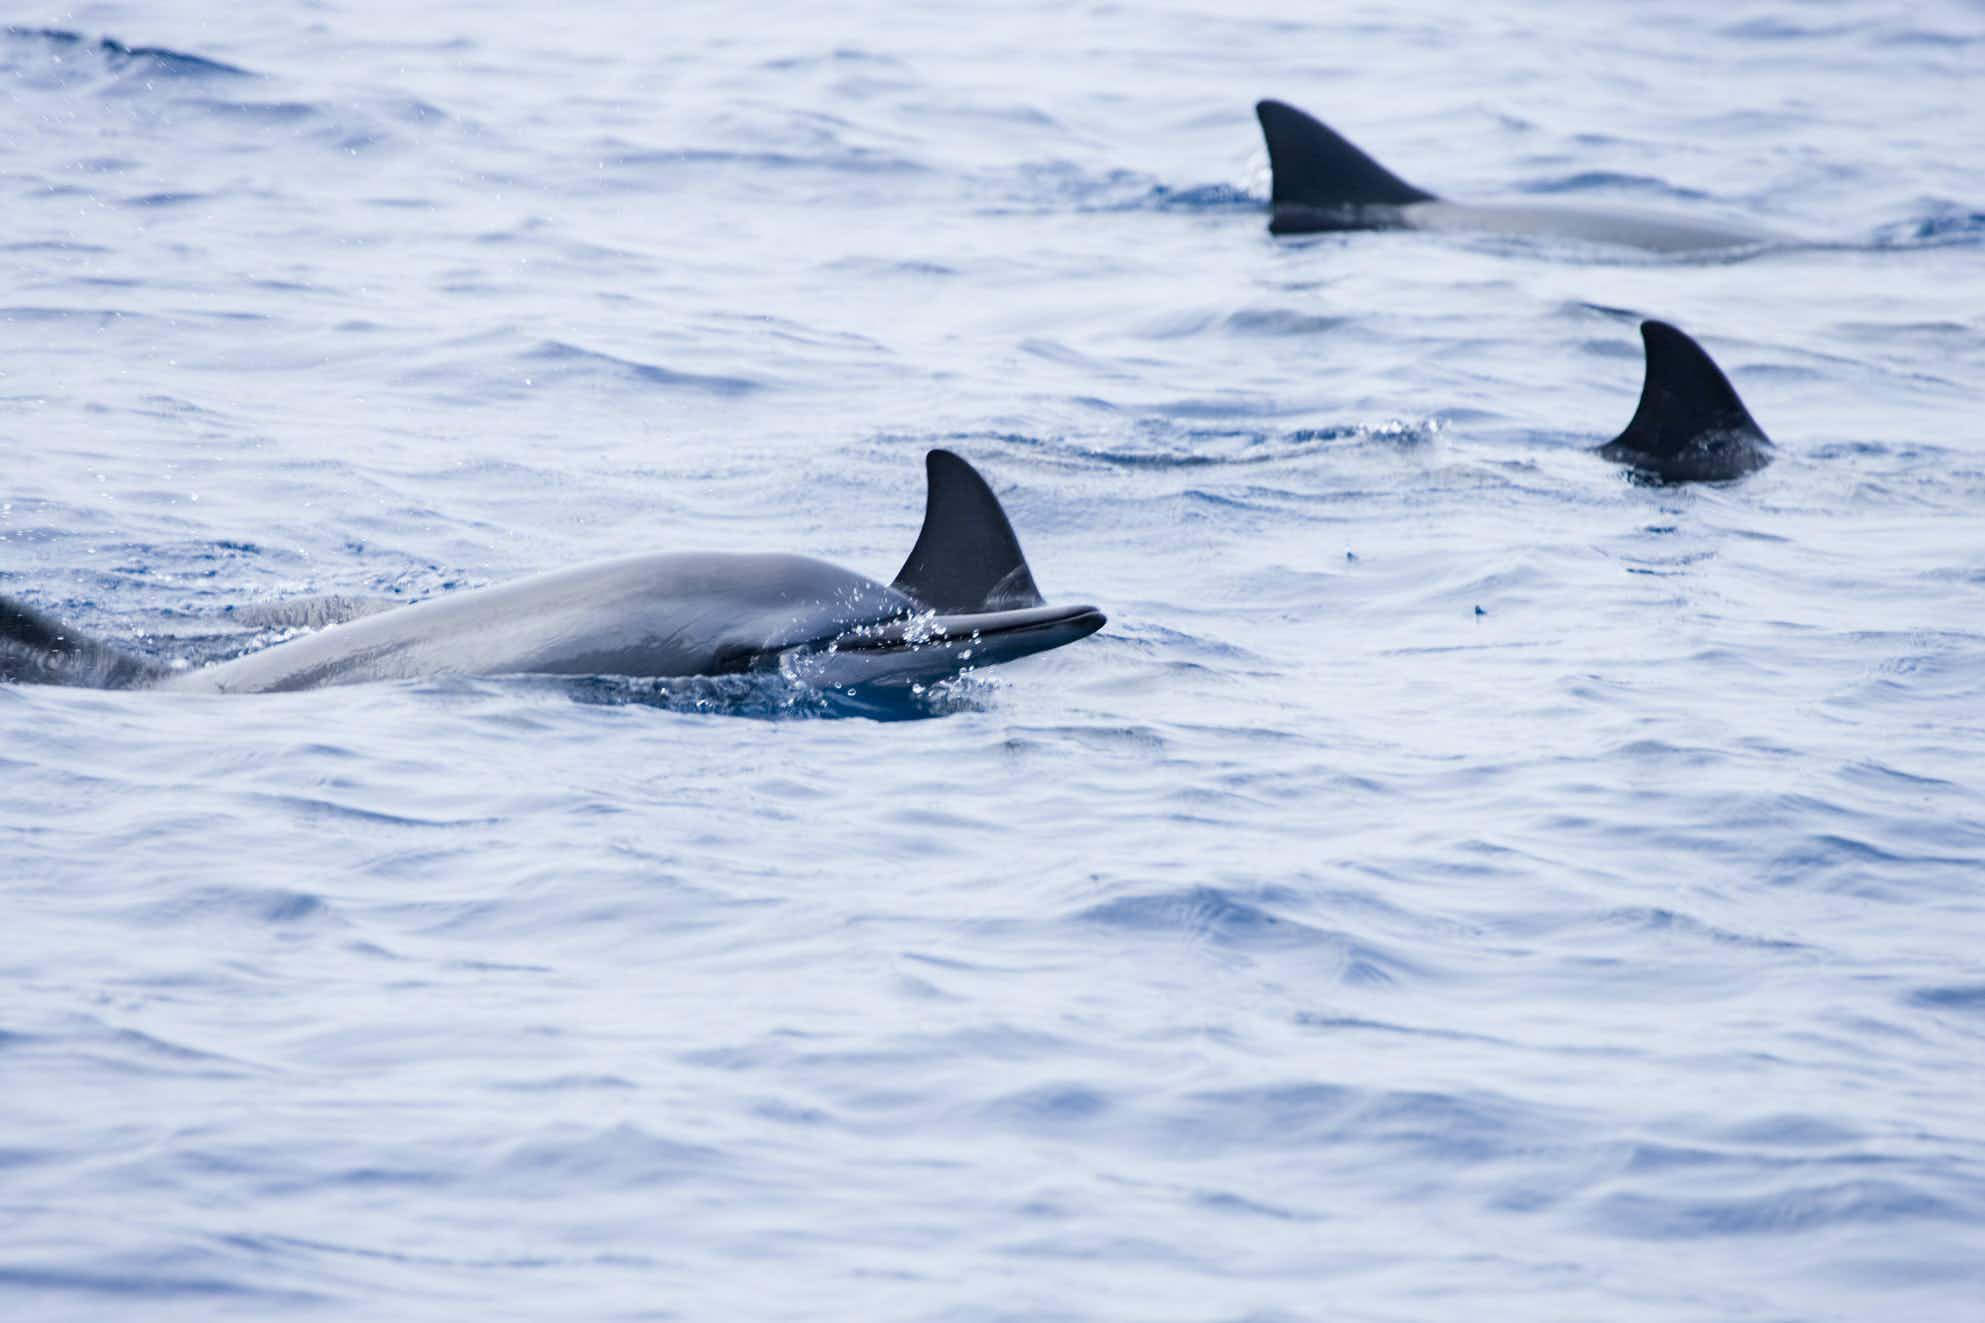 A rare whale-dolphin hybrid has been discovered off the coast of Hawaii